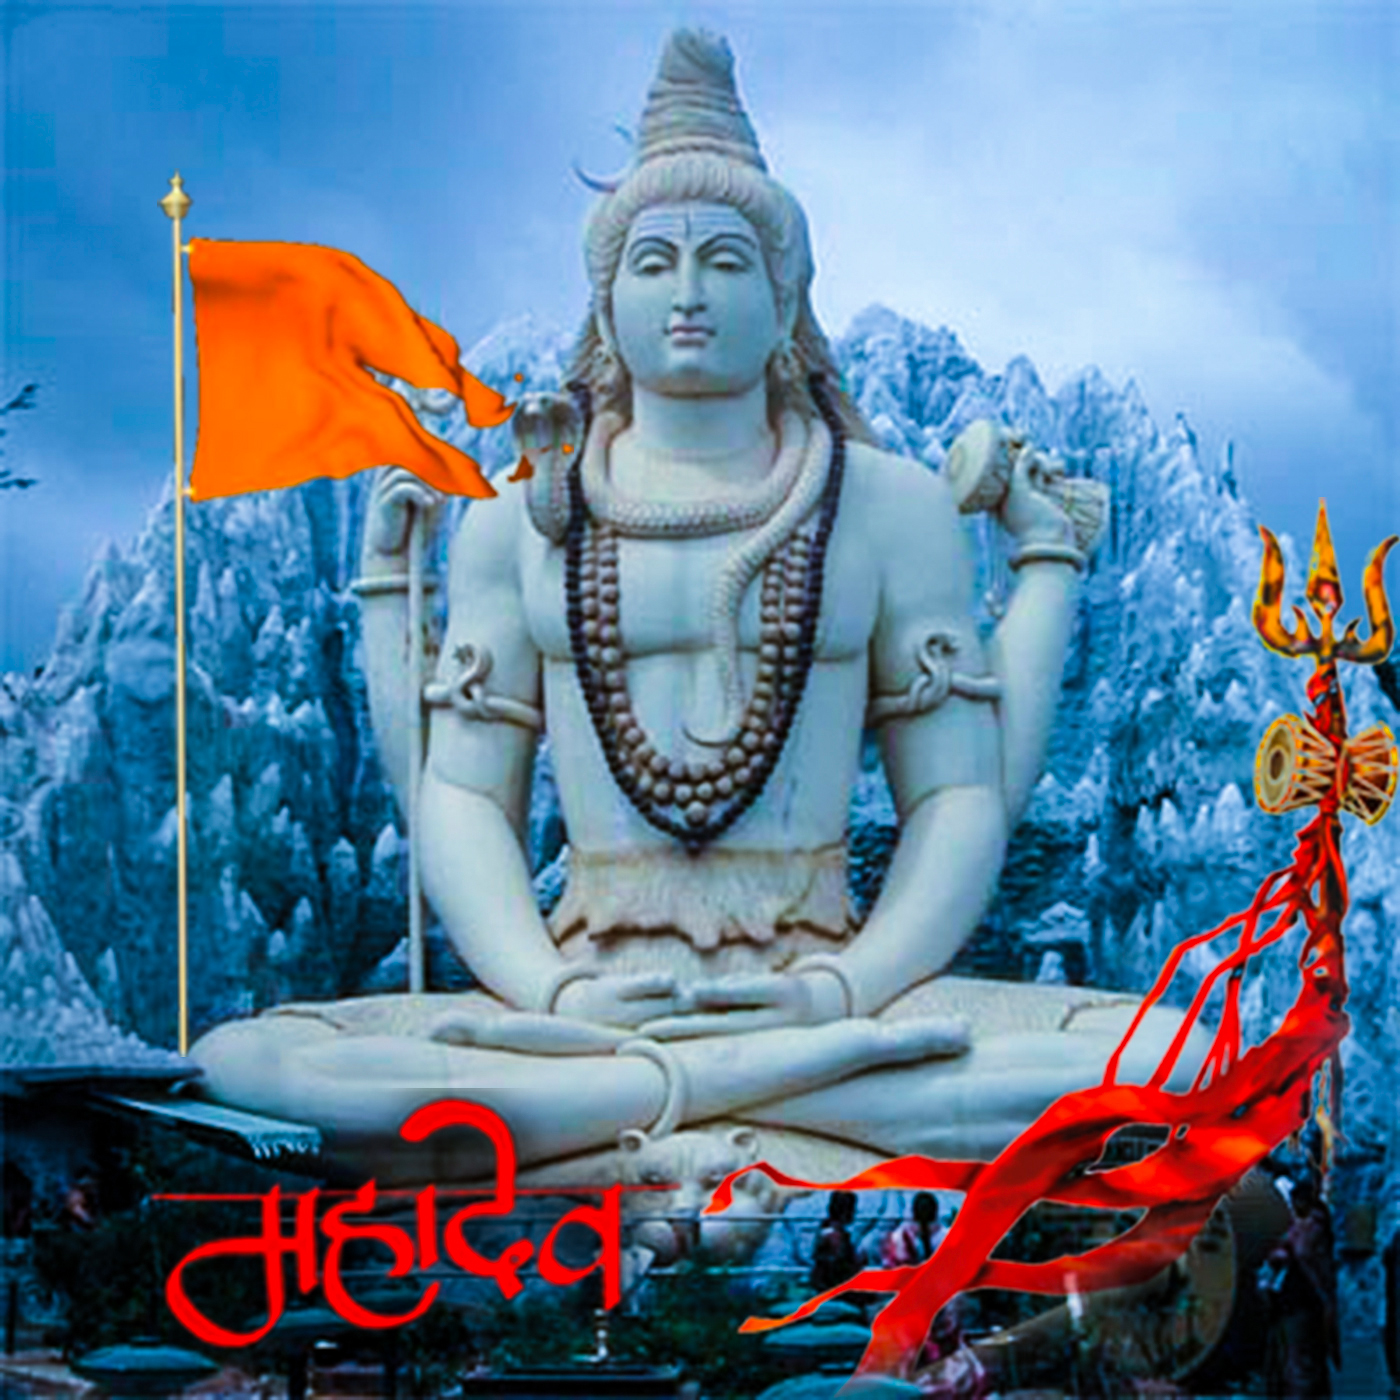 maha shivratri editing backgrounds 4